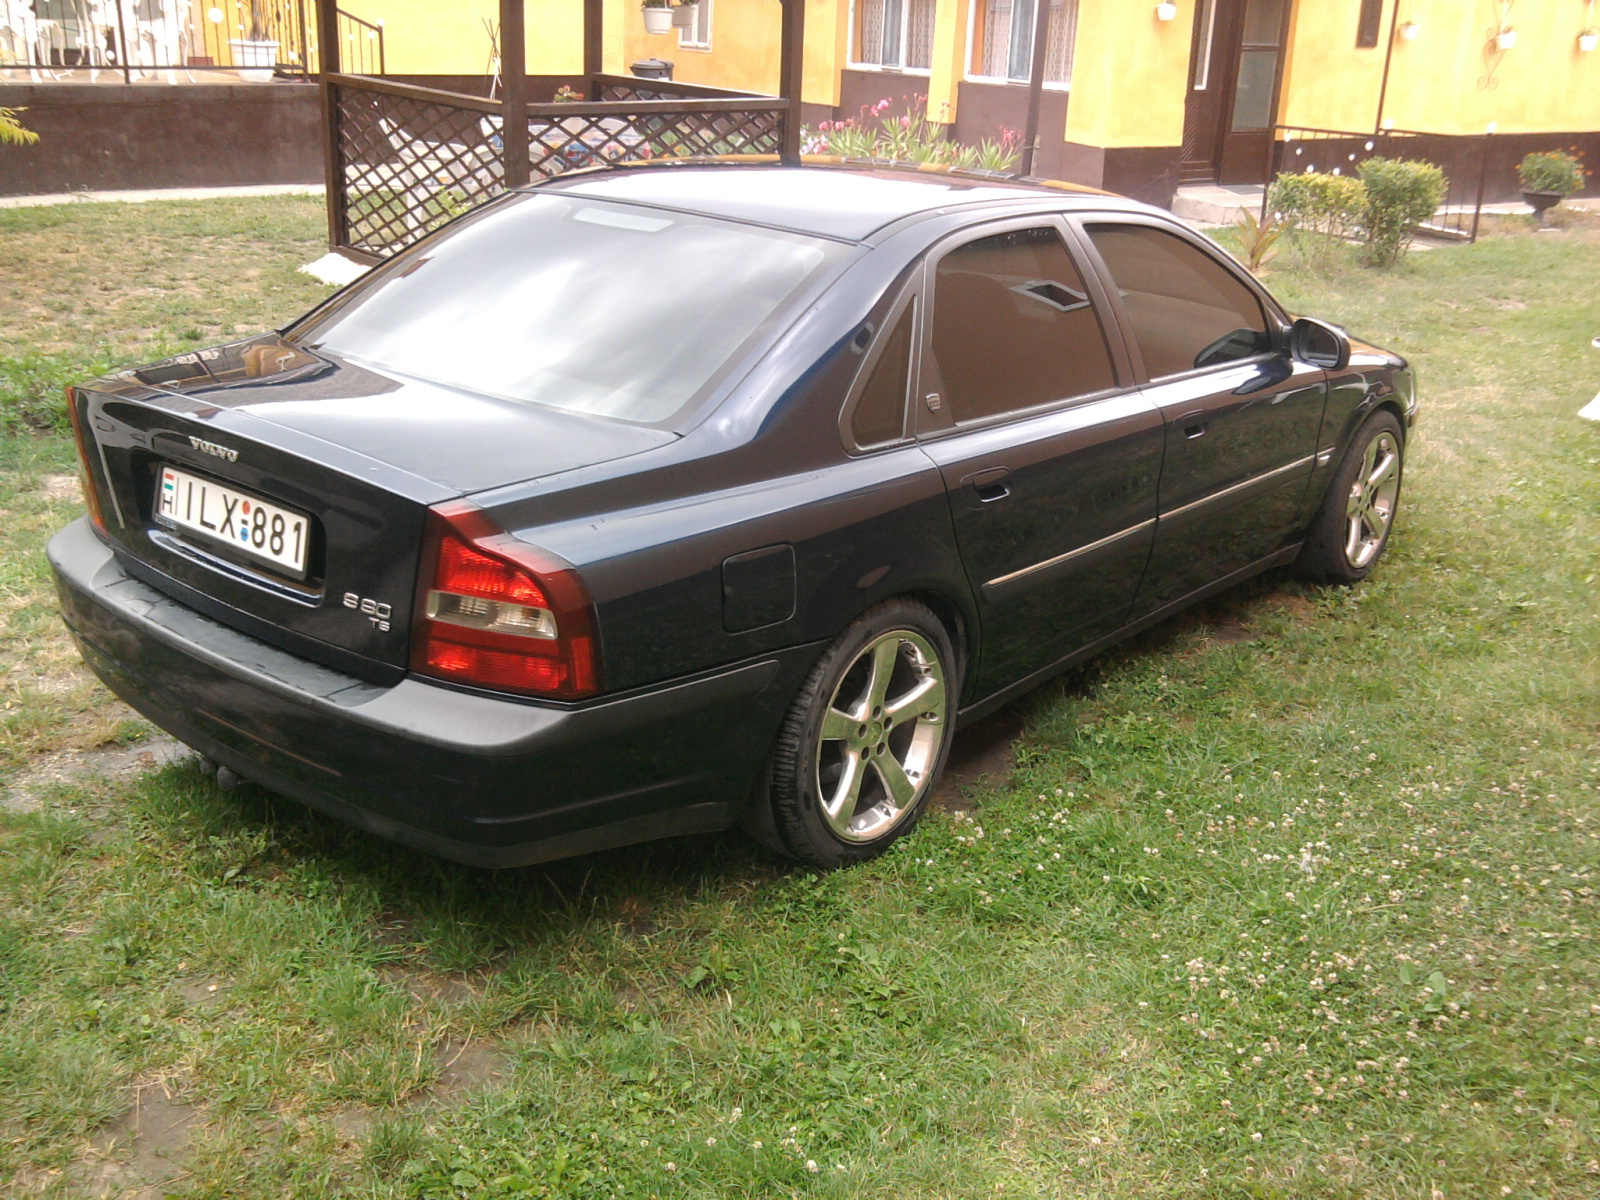 volvo s80 t6 tuning doncartacs carstyling hu magyar. Black Bedroom Furniture Sets. Home Design Ideas